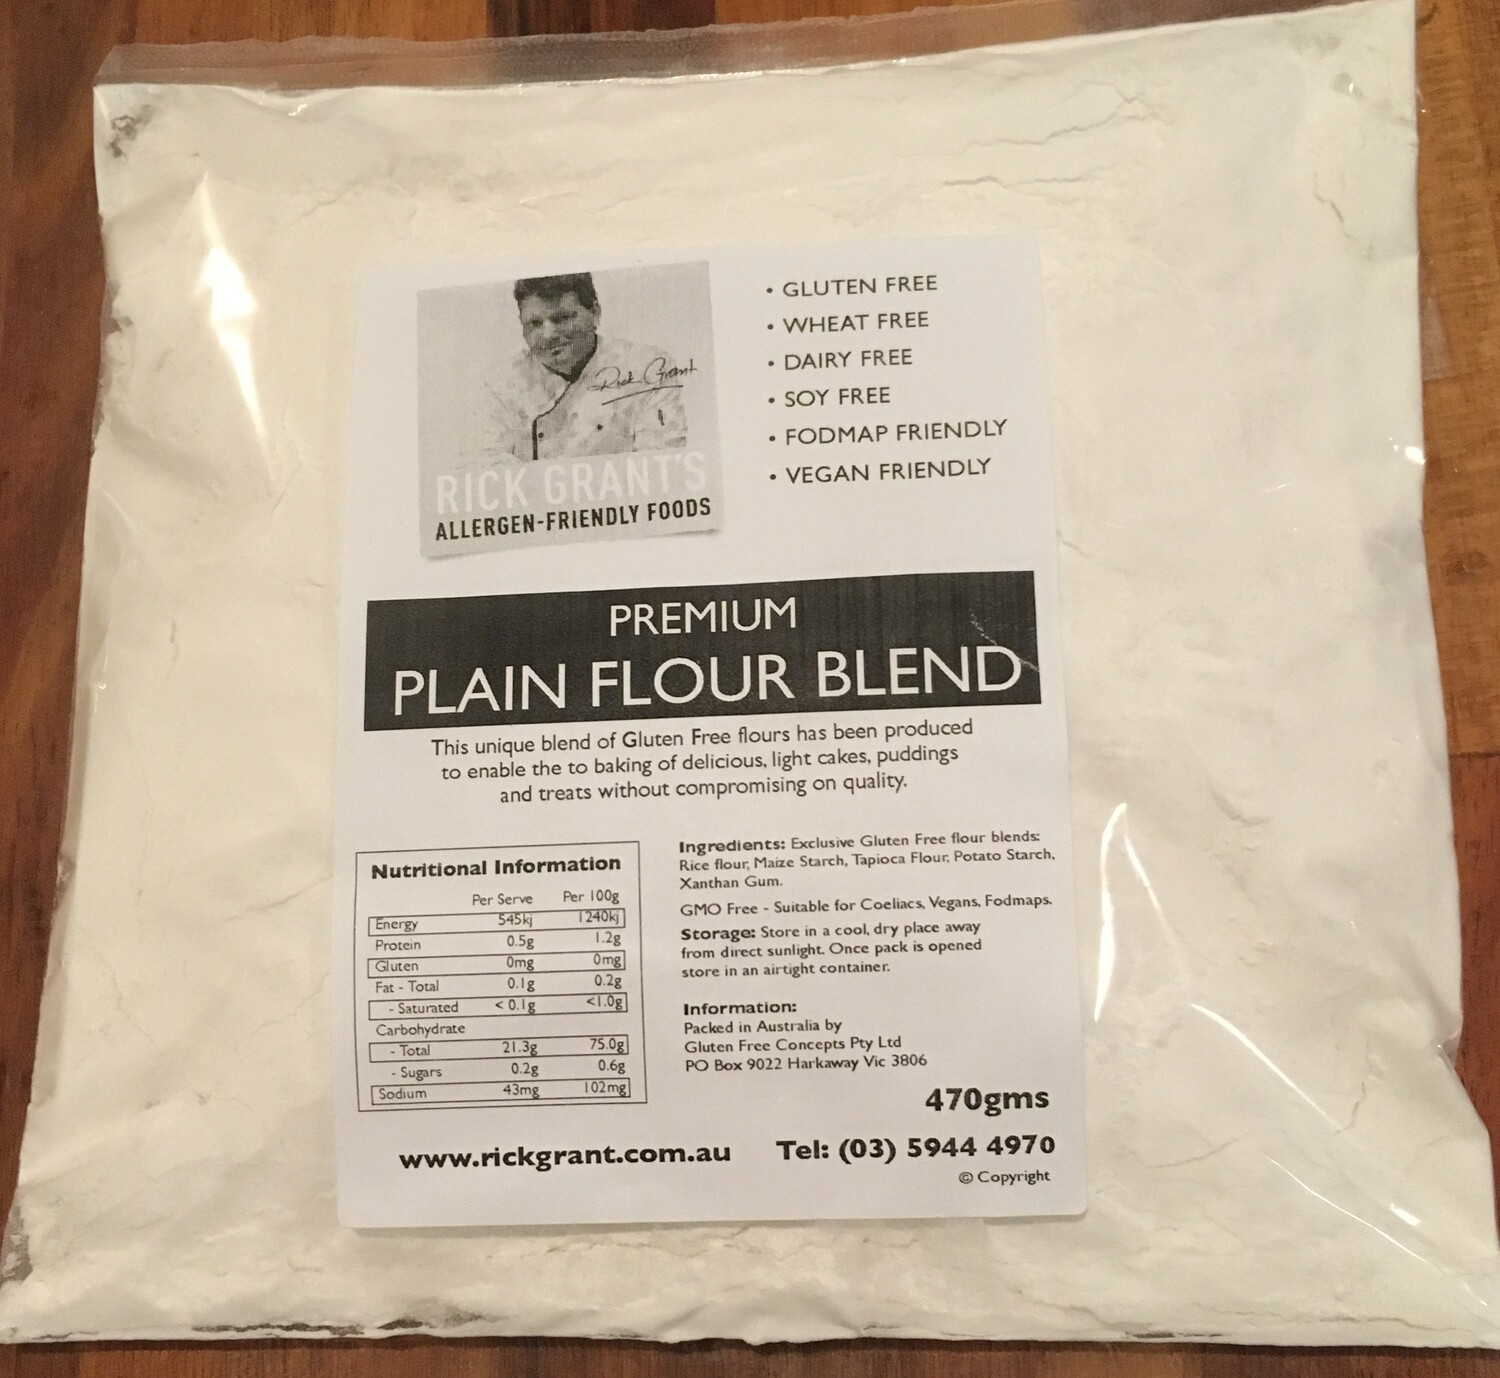 NEW TO THE STORE! Premium Gluten Free Plain Flour can be used for all cooking when plain flour is called for.